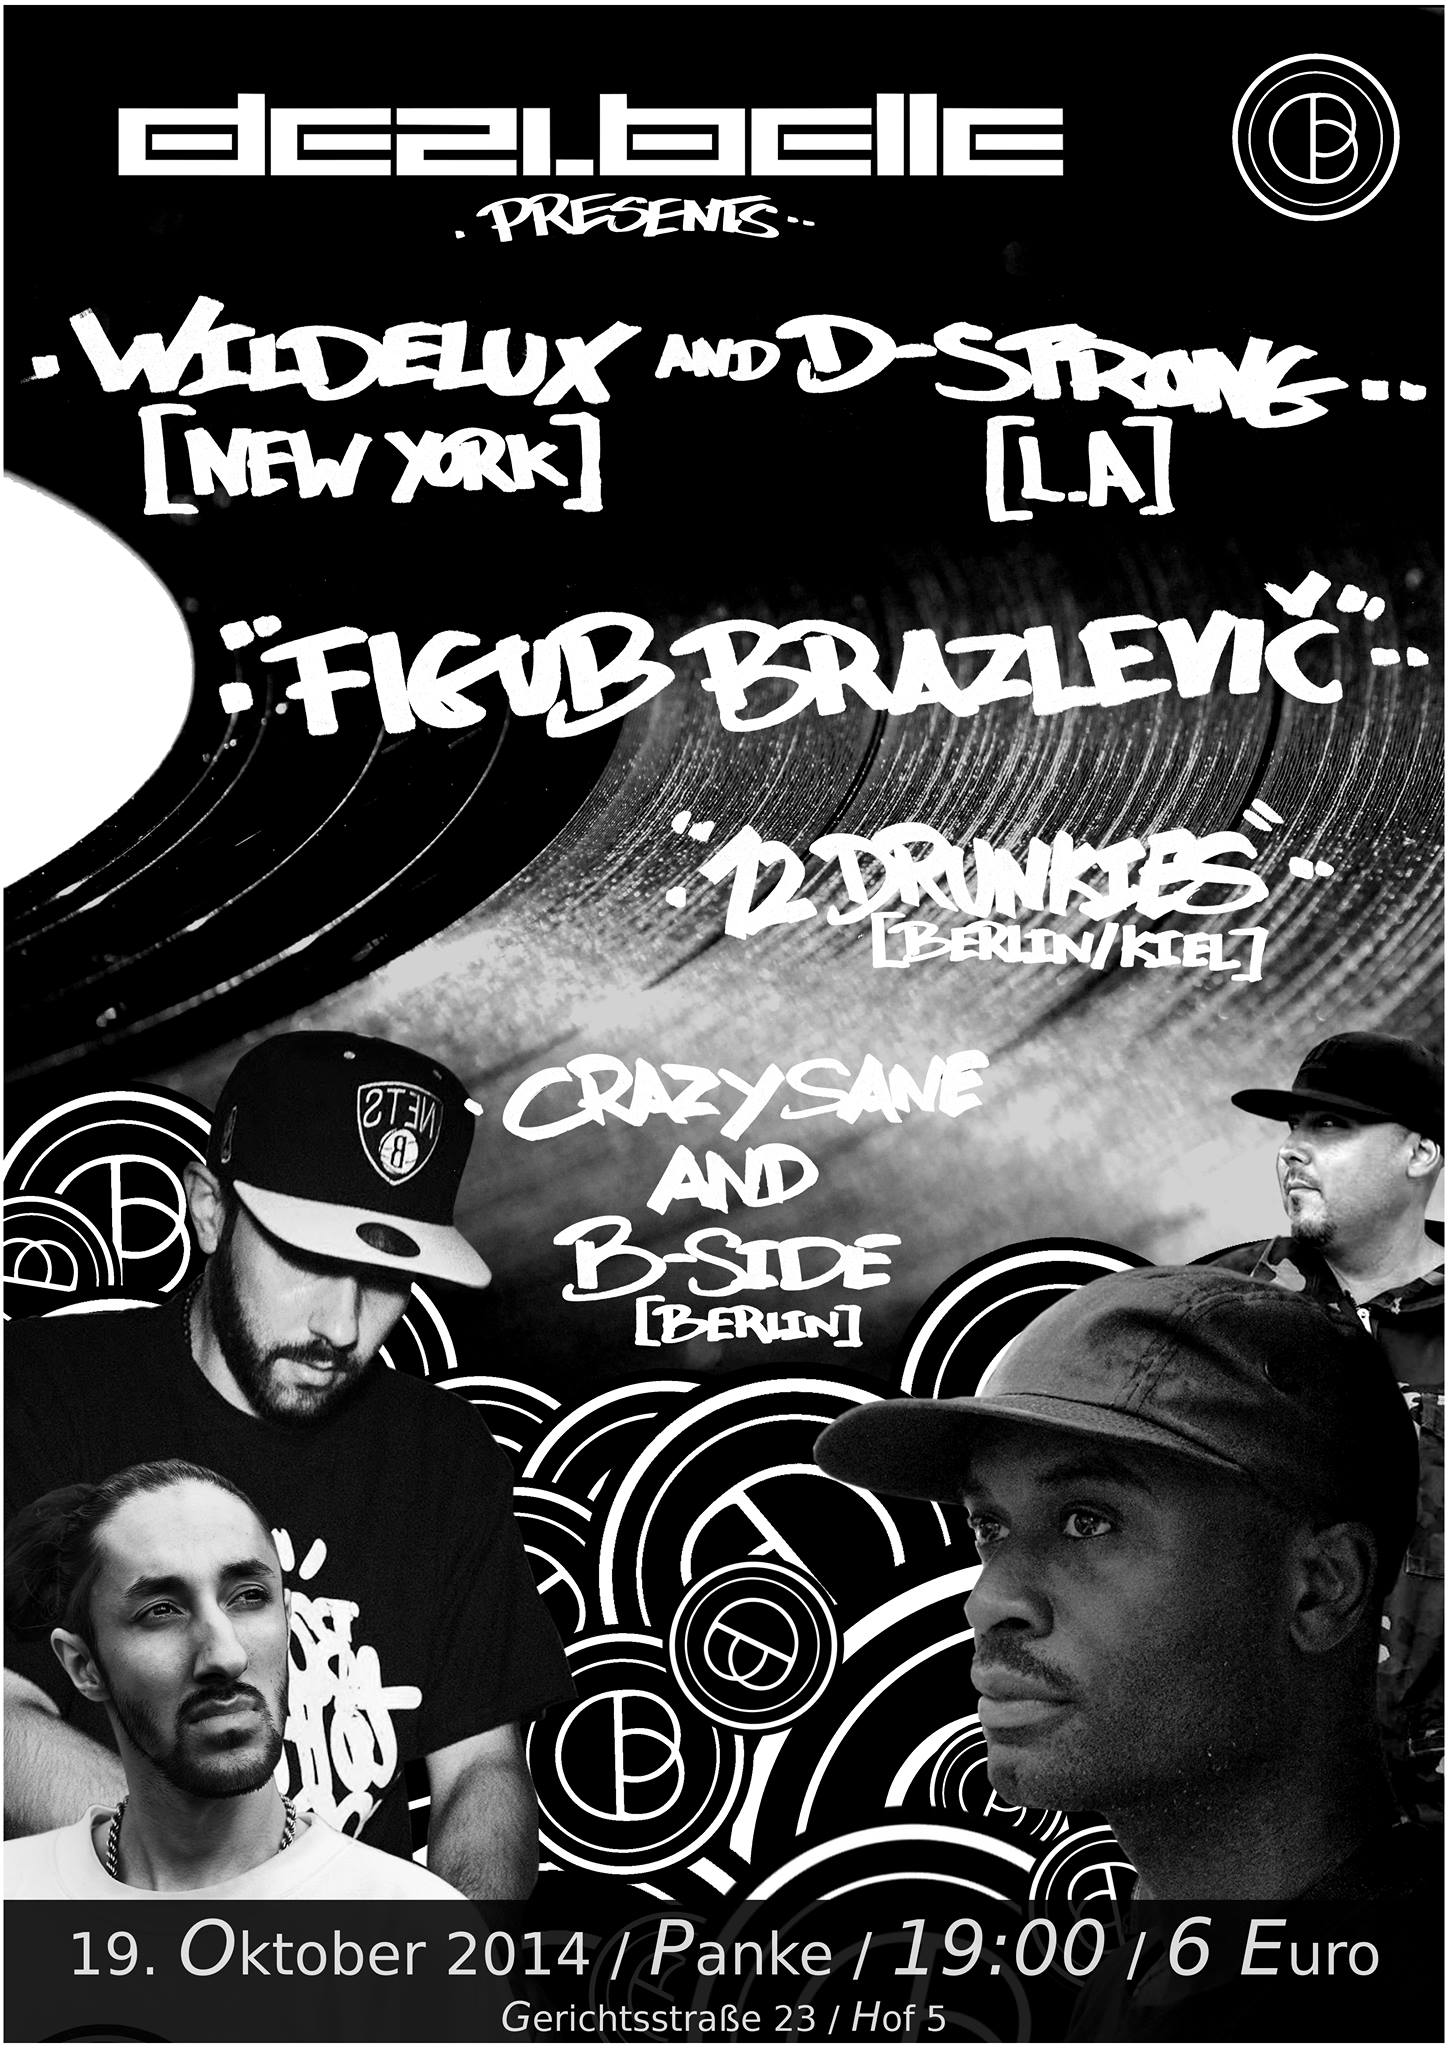 Wildelux [NY] | D-Strong [L.A.] | Figub Brazlevič | Sane Crazy on B-Side | 12 Drunkies